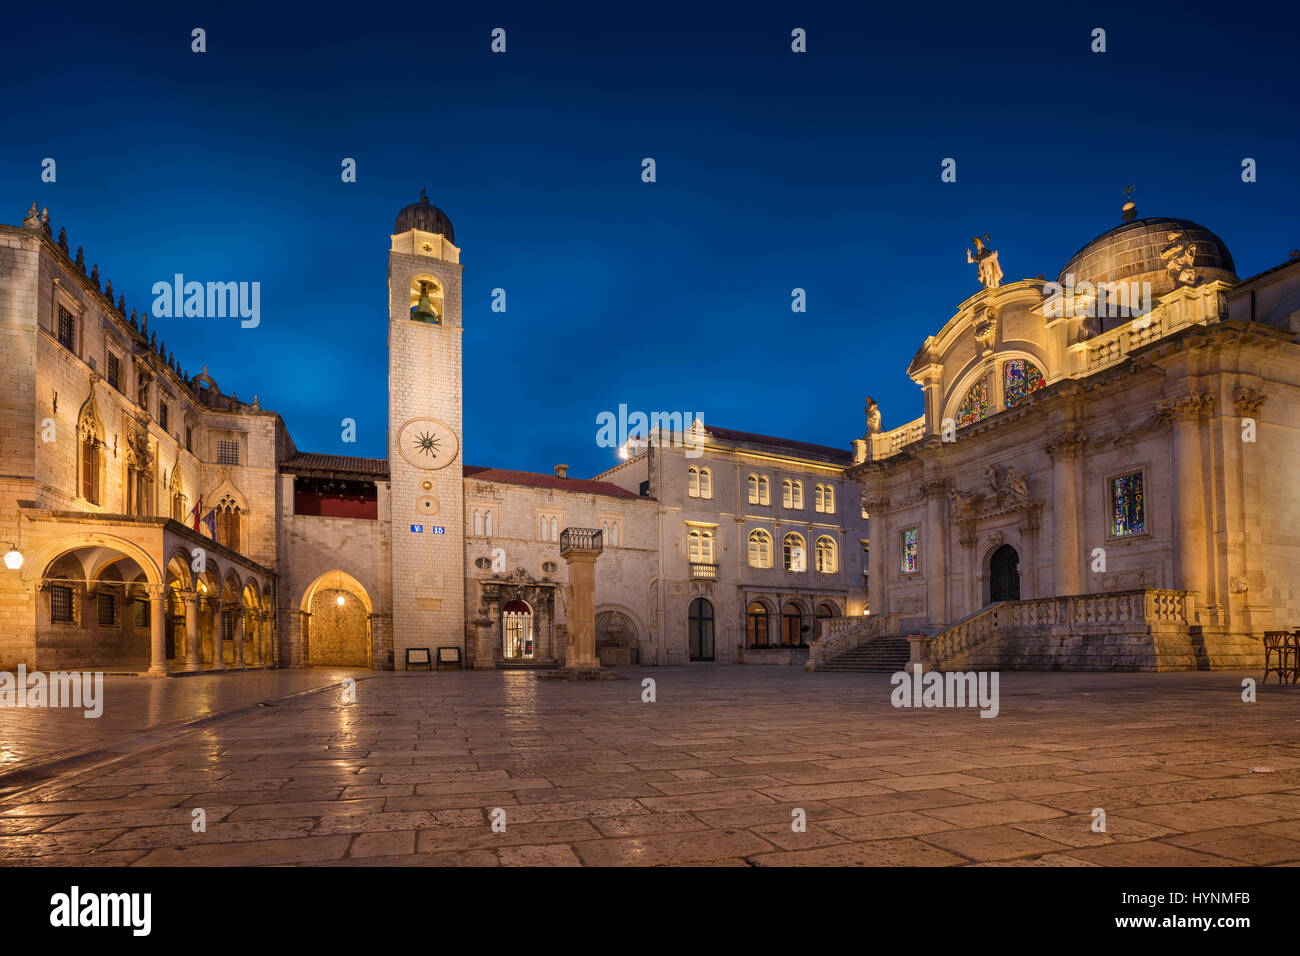 Dubrovnik. Beautiful romantic streets of old town Dubrovnik during twilight blue hour. - Stock Image